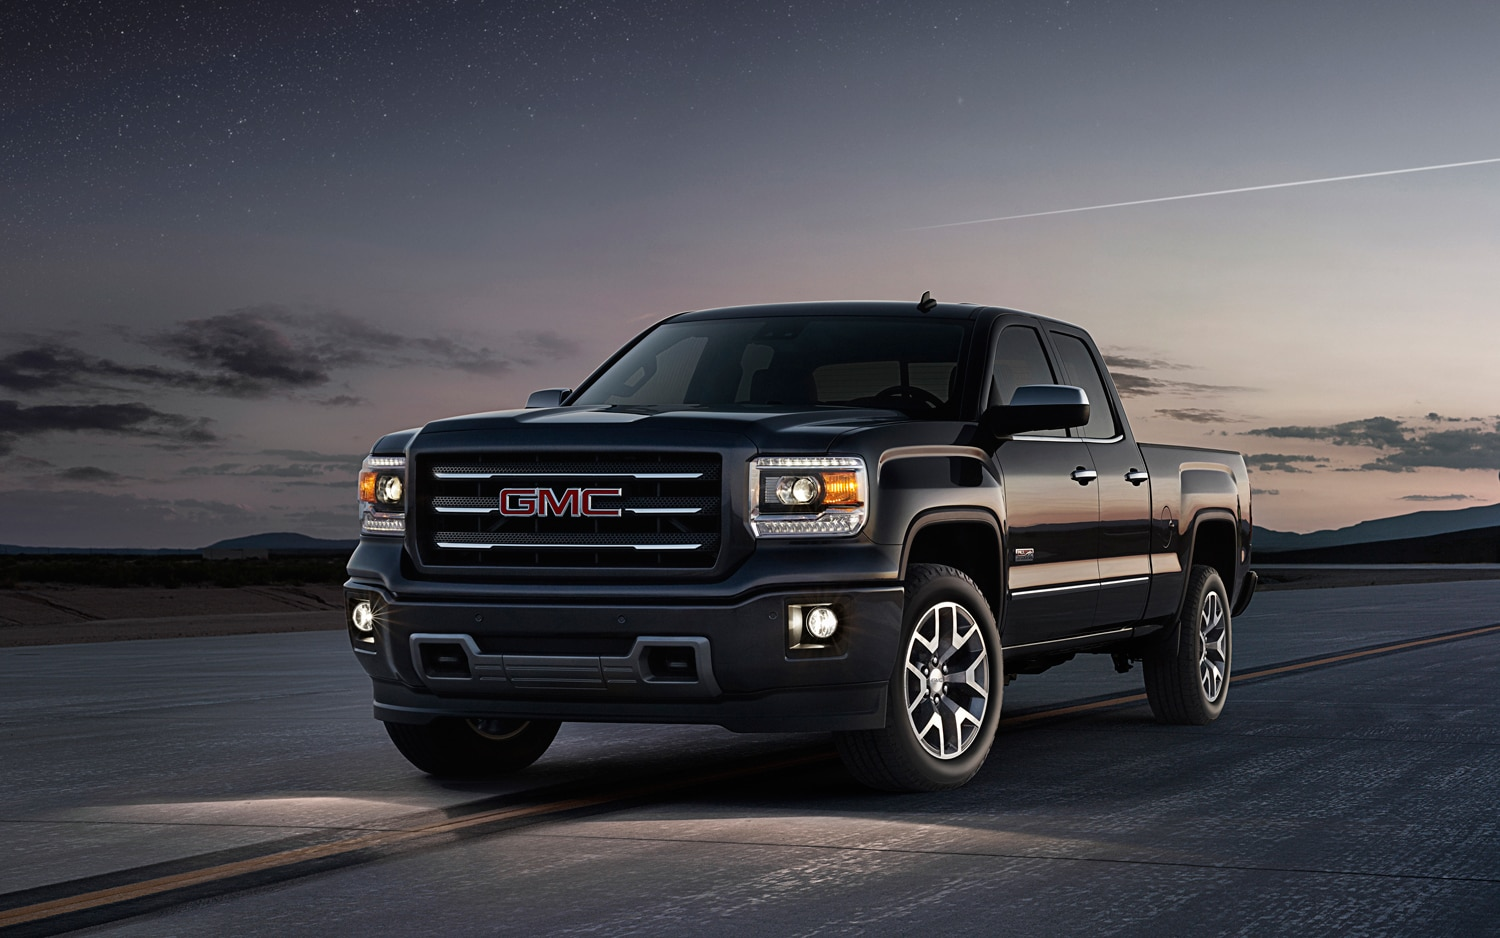 2014 GMC Sierra Front Three Quarter 2